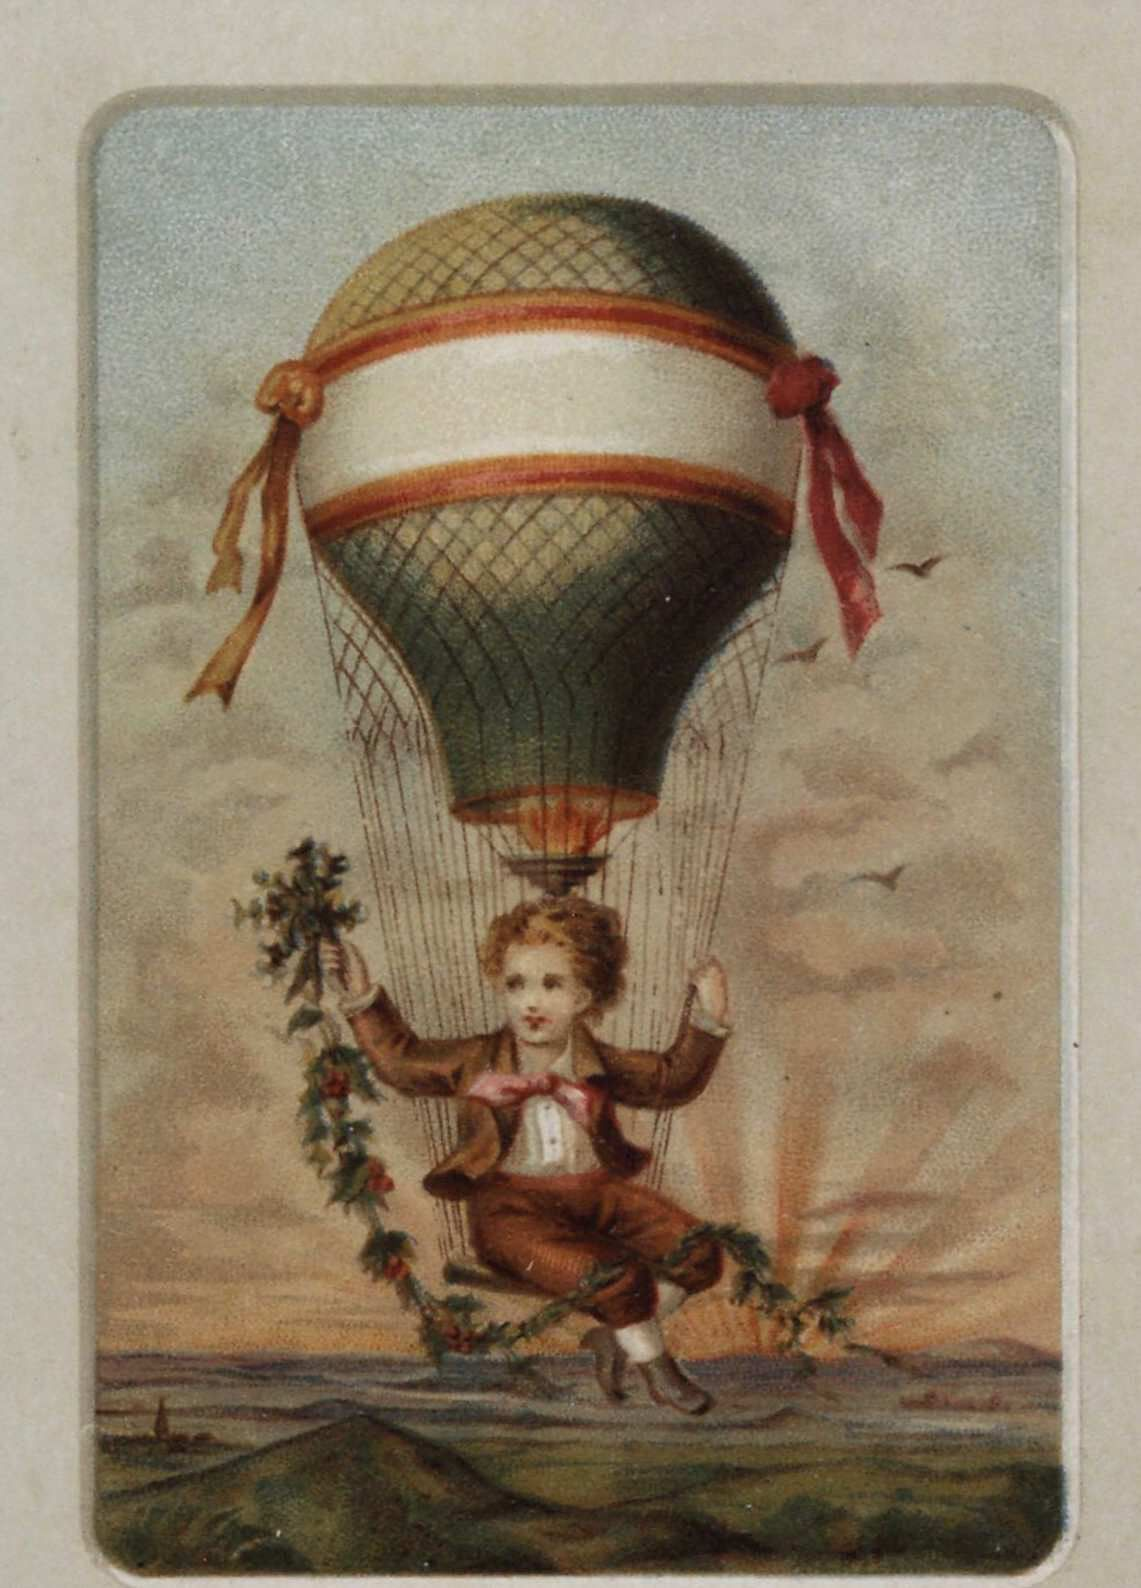 Untitled. Boy up in a gas balloon with garland